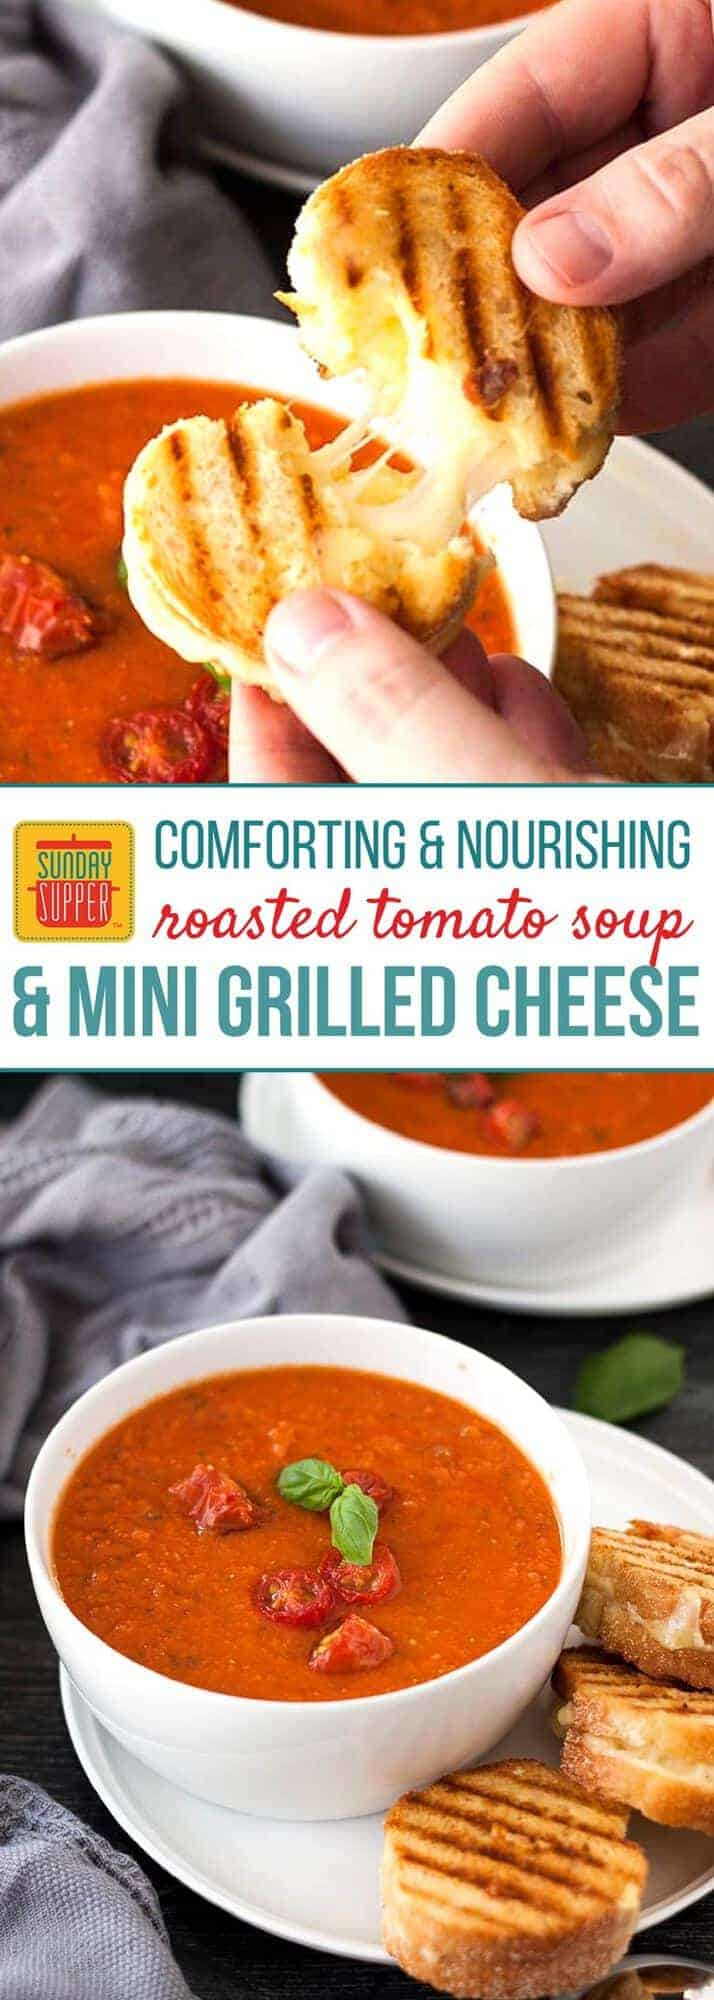 Grilled Cheese and Tomato Soup is classic COMFORT FOOD! Fresh ingredients maximize flavor and the mini grilled cheese sandwiches are the CUTEST ever! You can't go wrong with this classic combo! It makes the PERFECT lunch meal, weekday supper, or even a casual dinner with family when you gather for Sunday Supper. #SundaySupper #GrilledCheese #TomatoSoup #EasyRecipe #SoupandSandwich